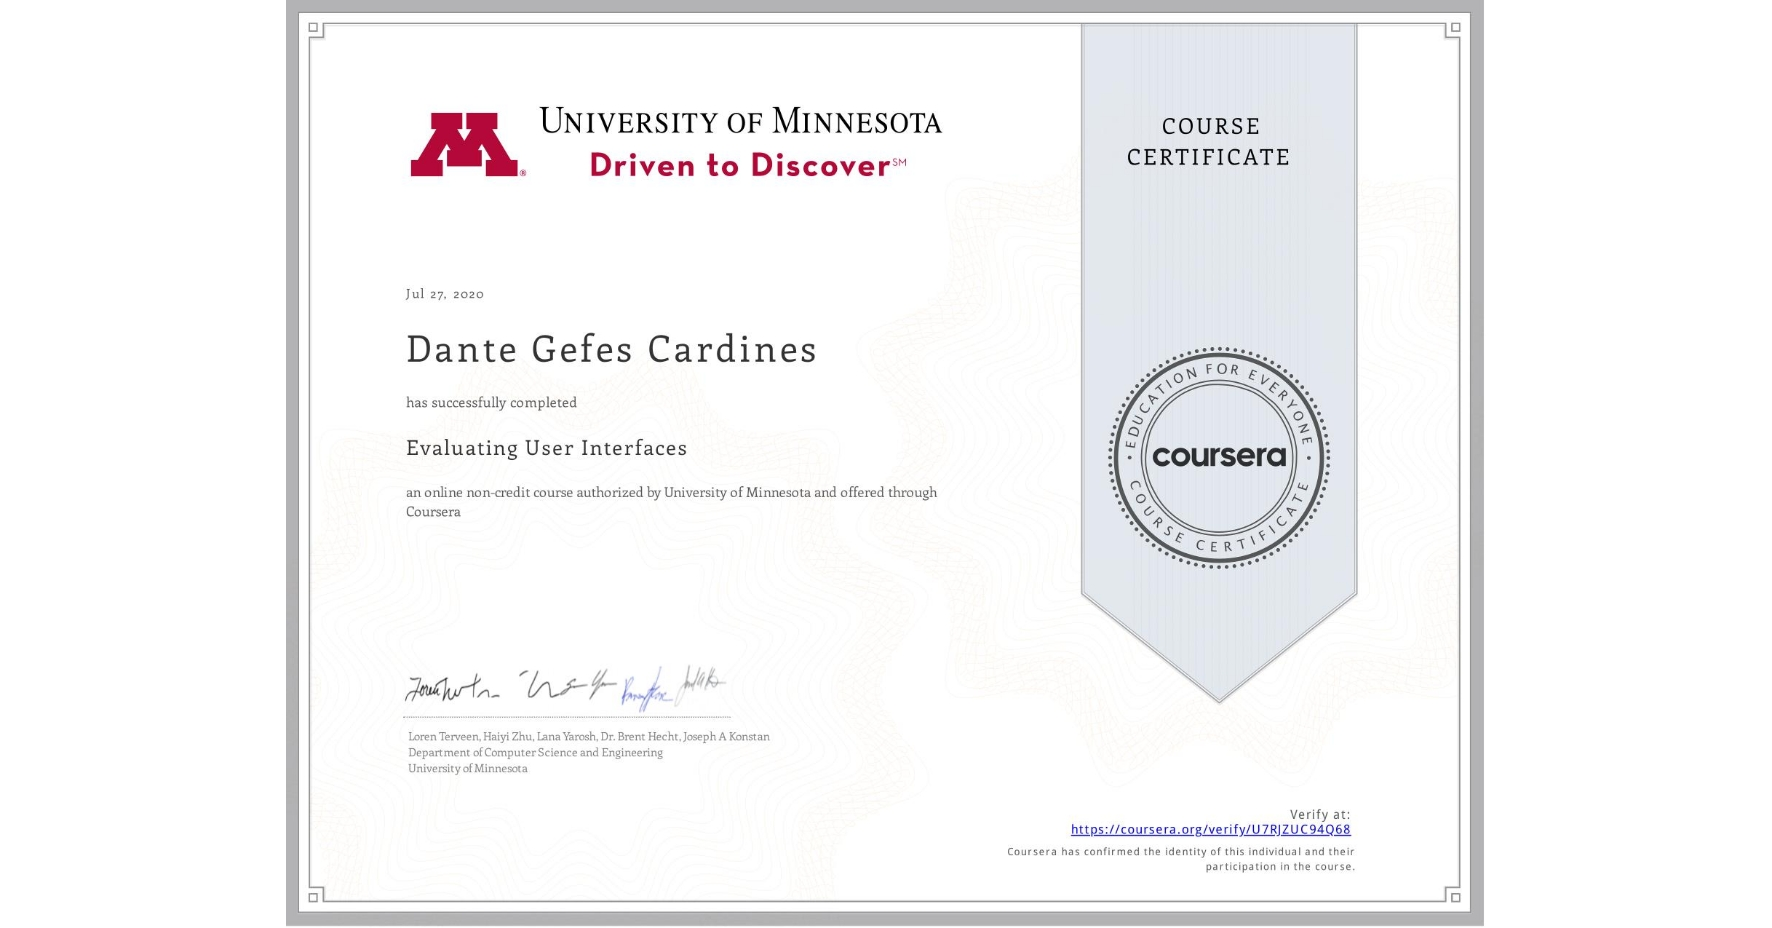 View certificate for Dante Gefes Cardines, Evaluating User Interfaces, an online non-credit course authorized by University of Minnesota and offered through Coursera